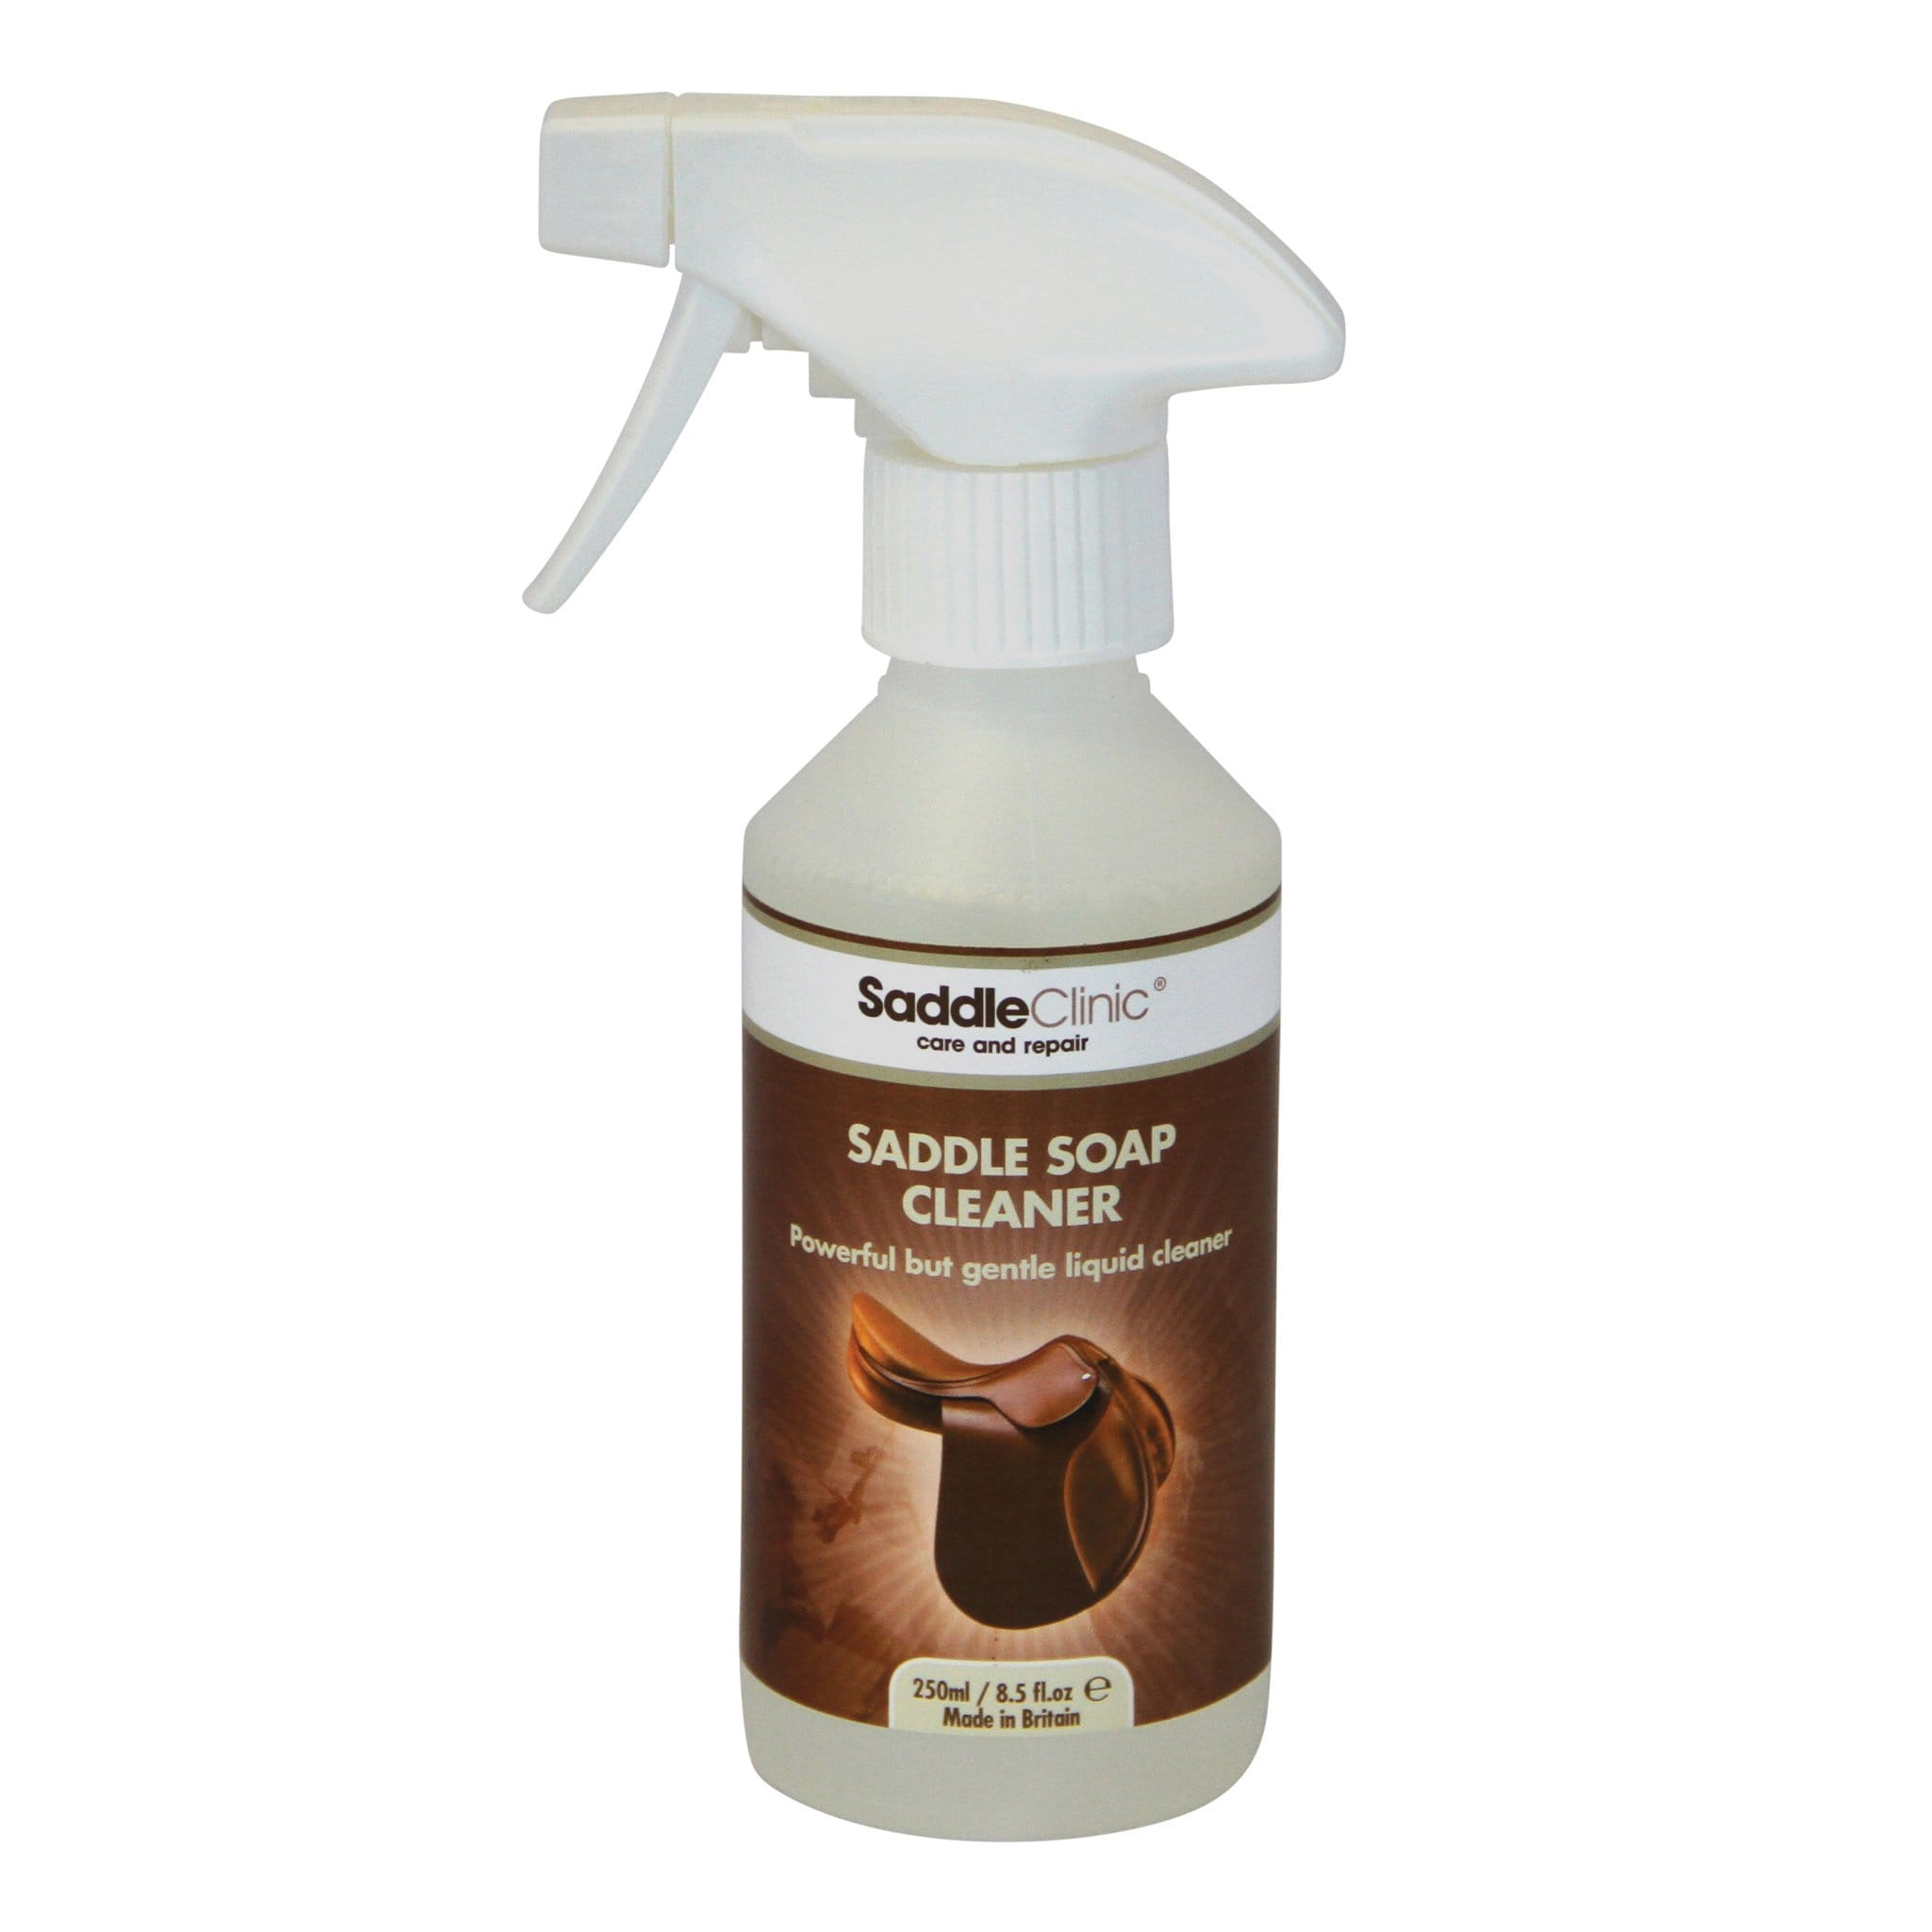 Saddle Clinic Saddle Cleaner 250ml 5361